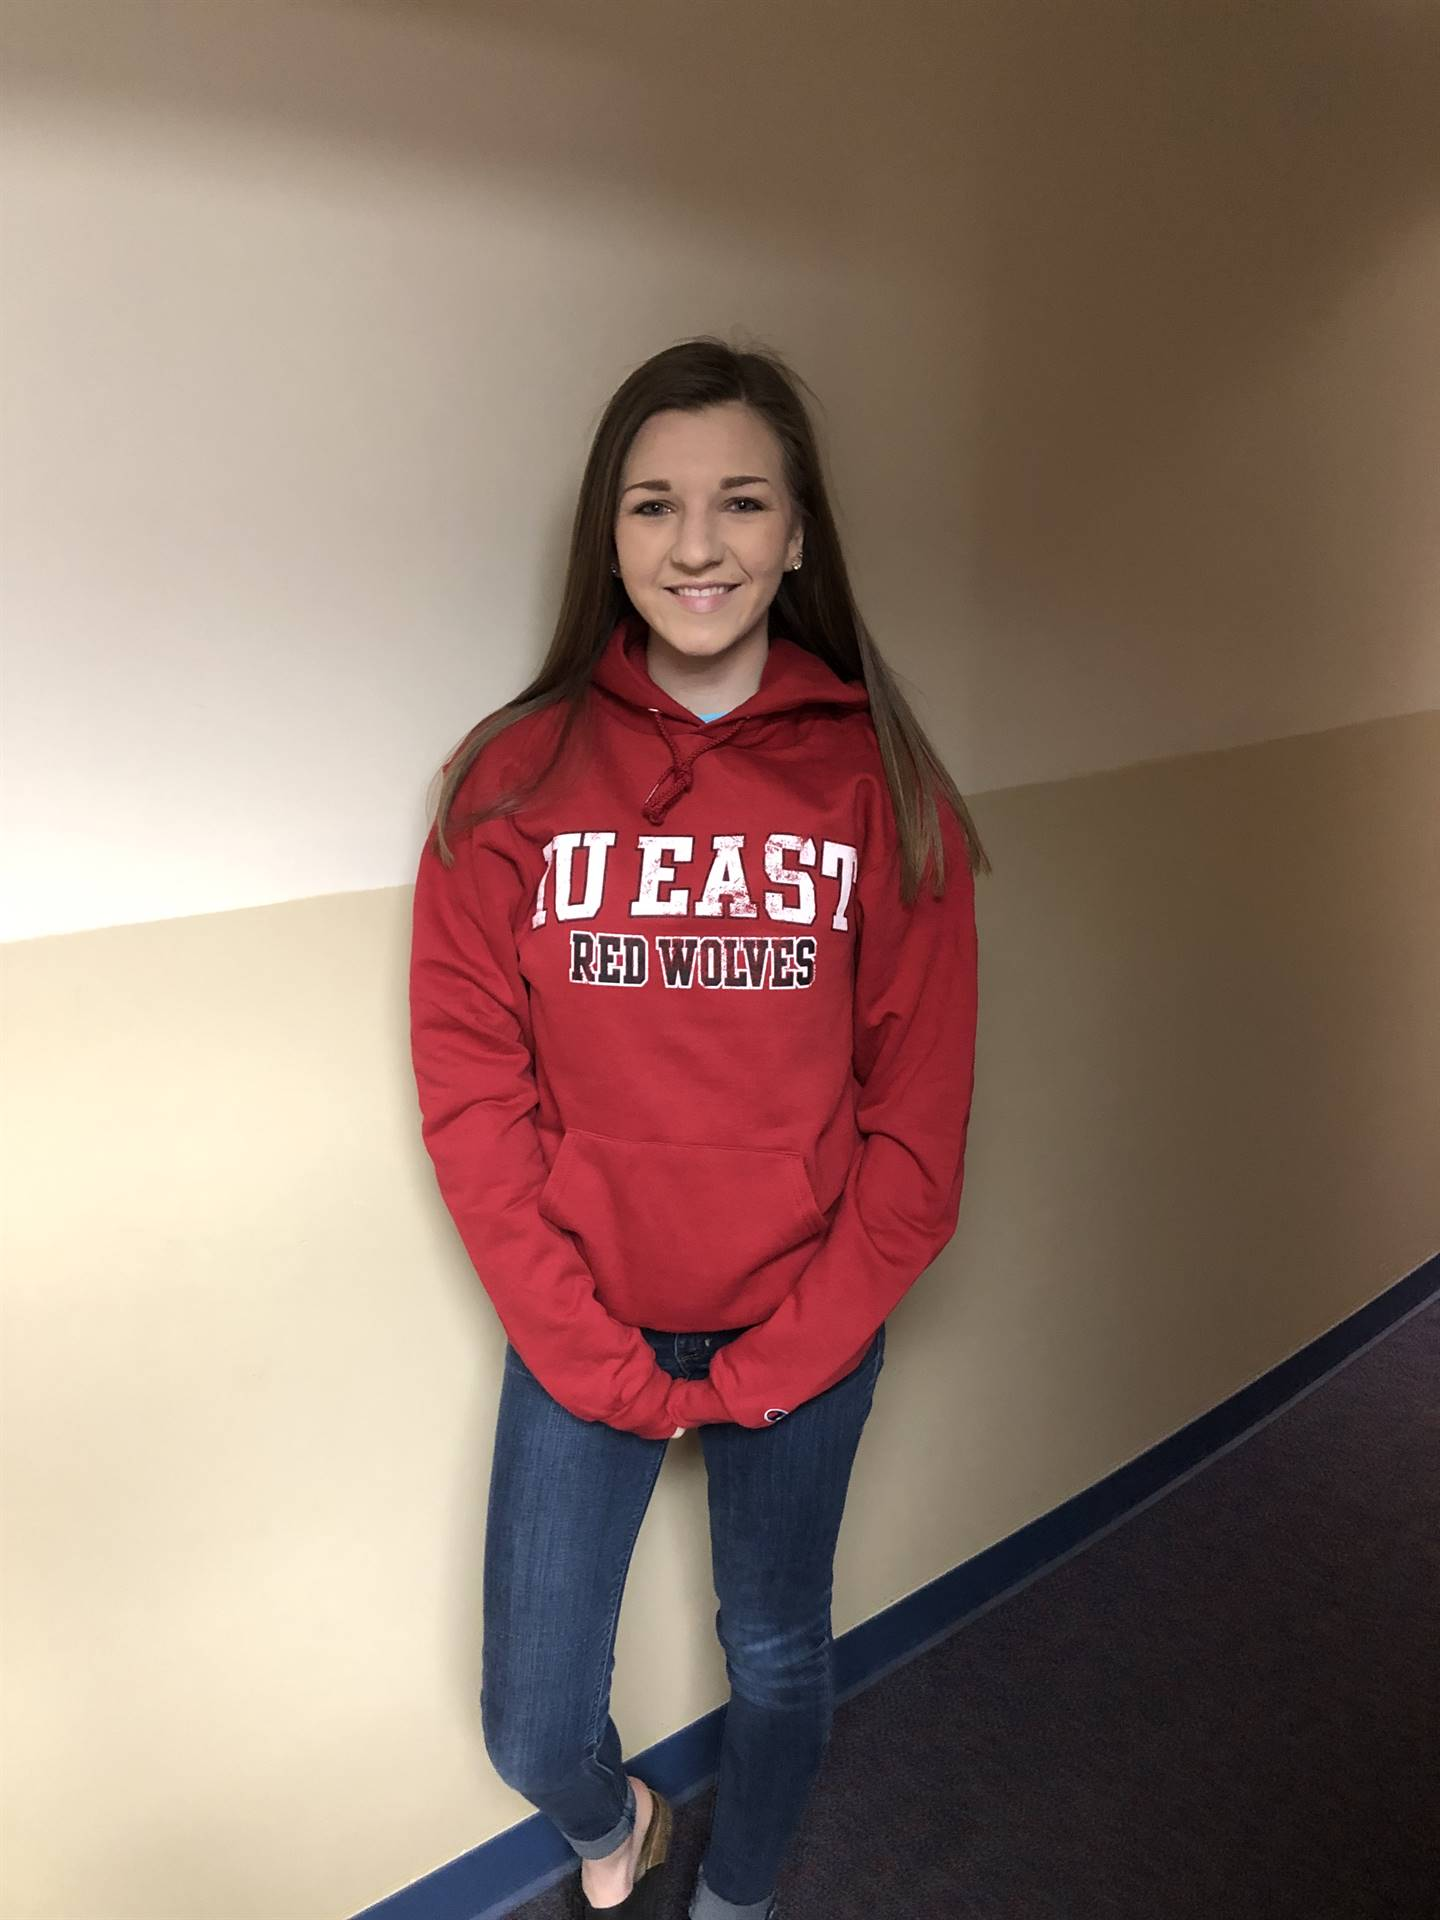 Dessirae McCullough - IU East Red Wolves